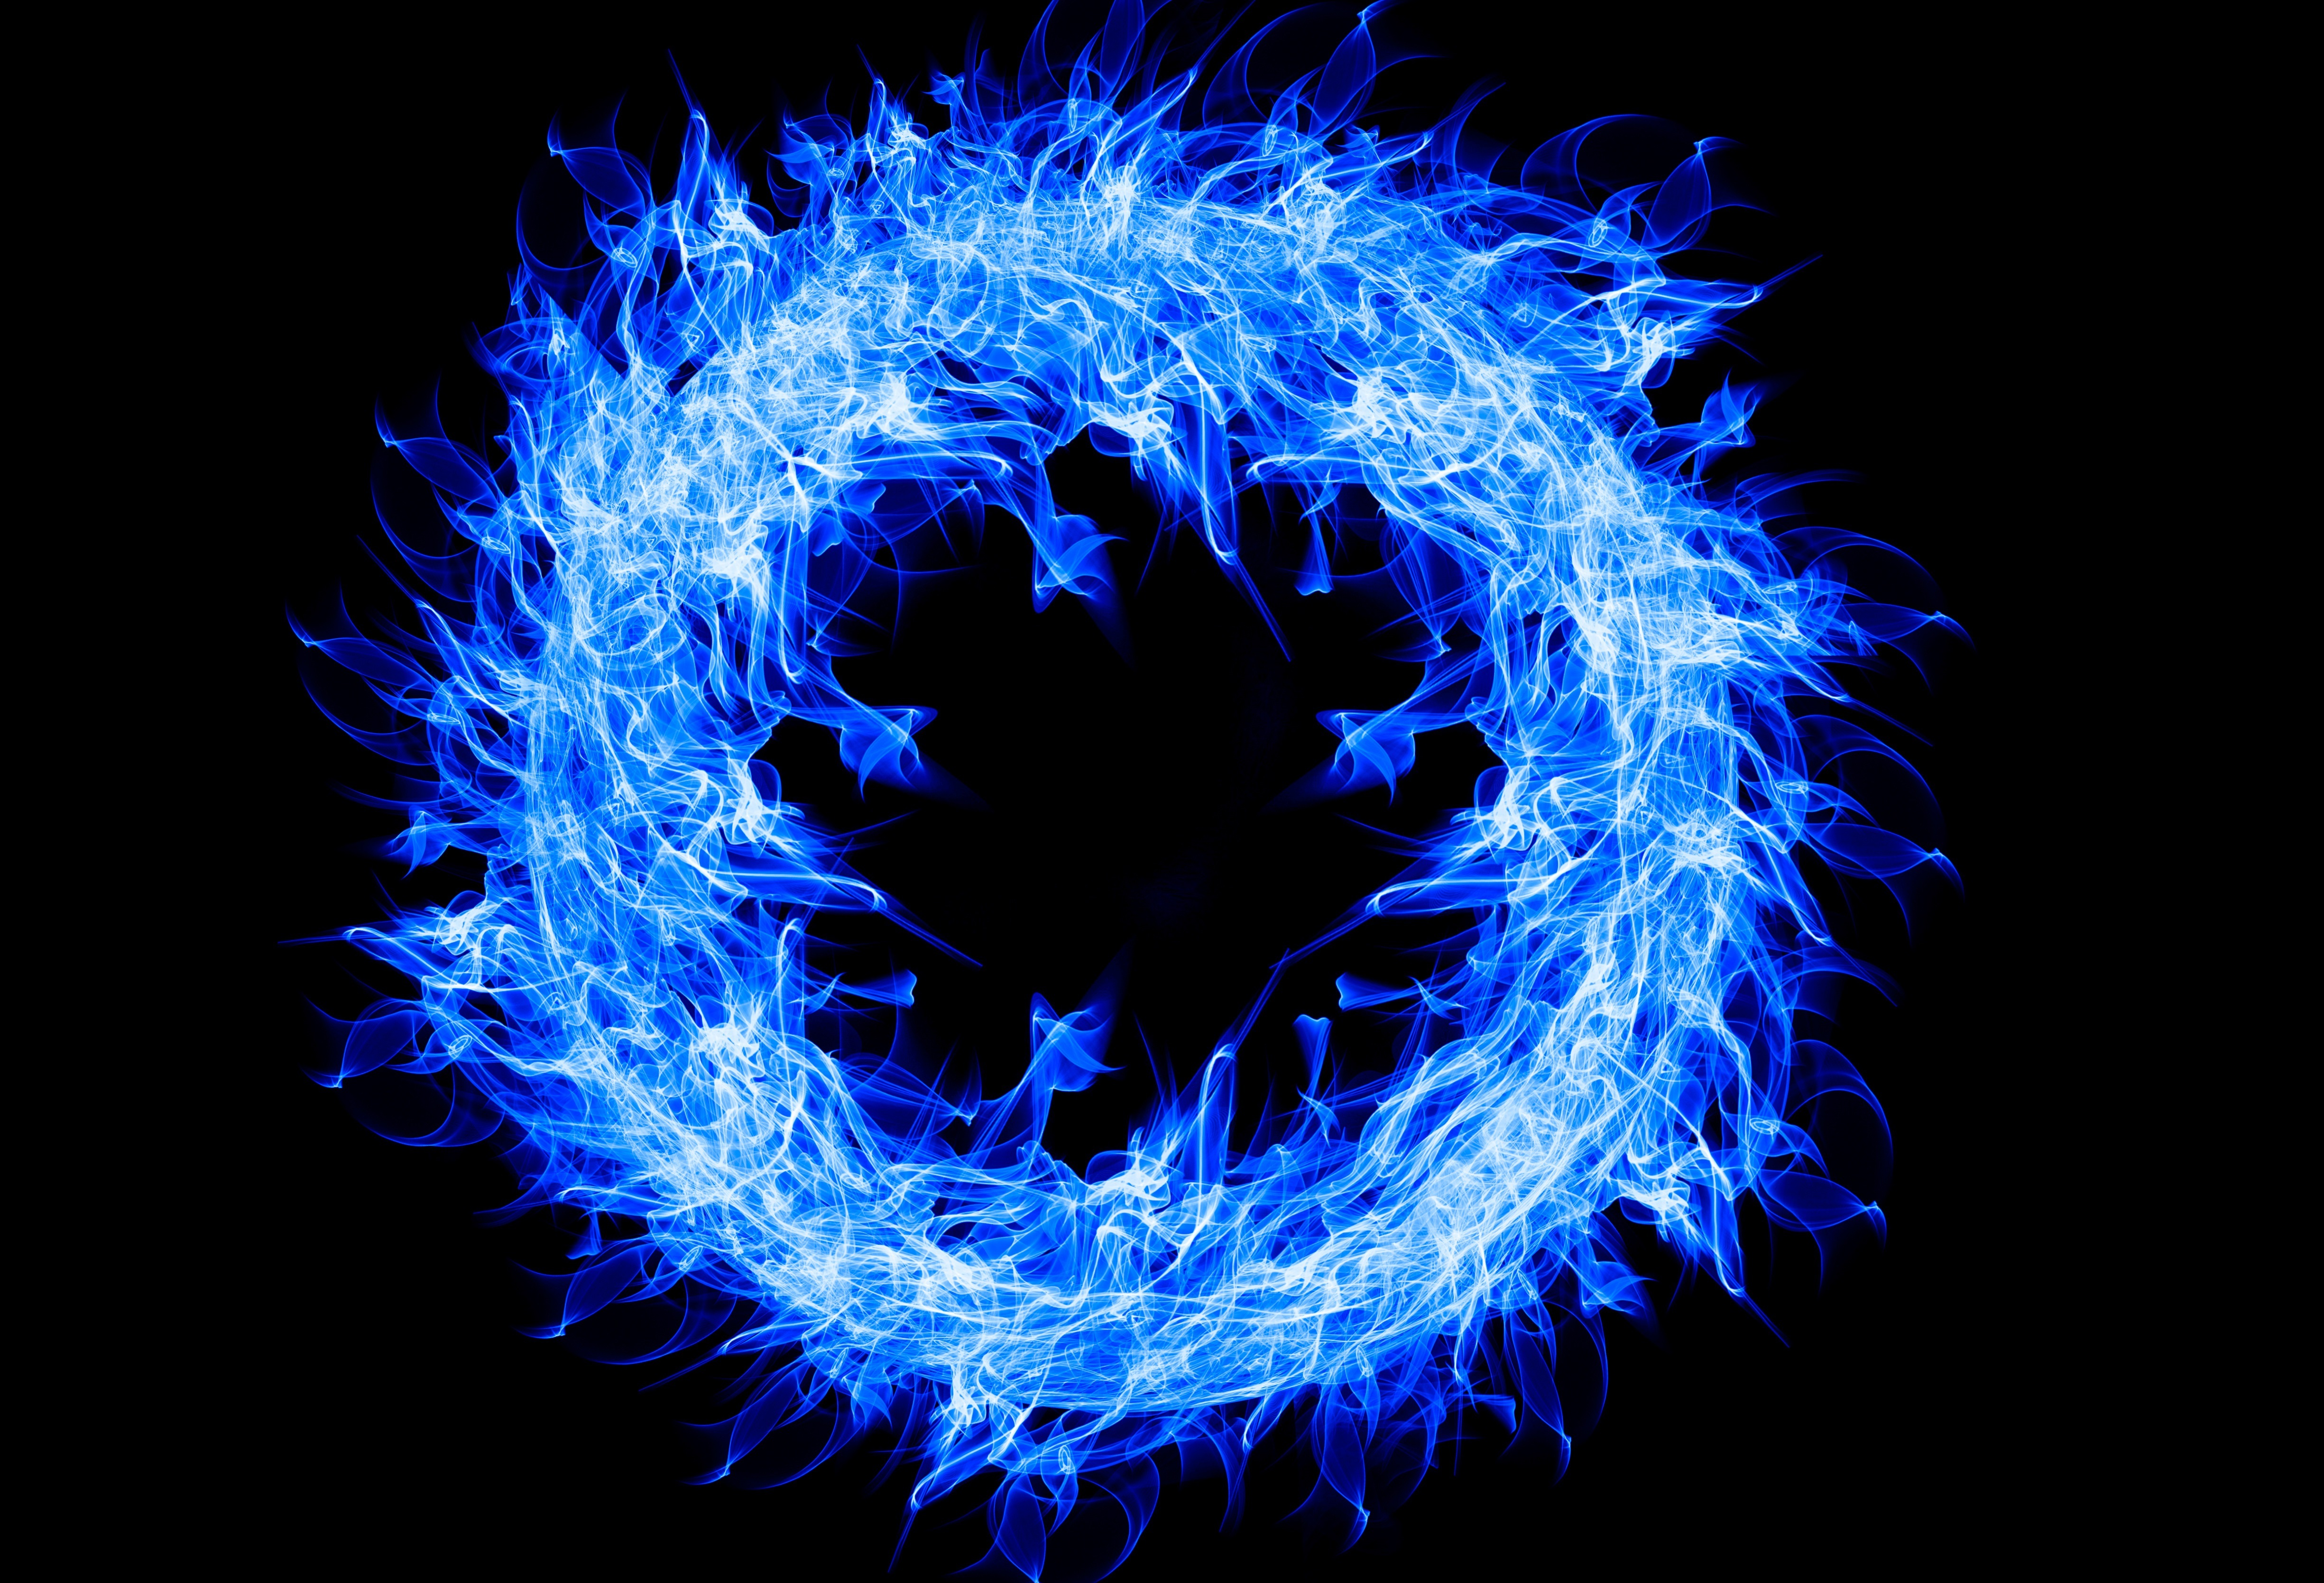 Blue Fire Ring 4k Hd Creative 4k Wallpapers Images